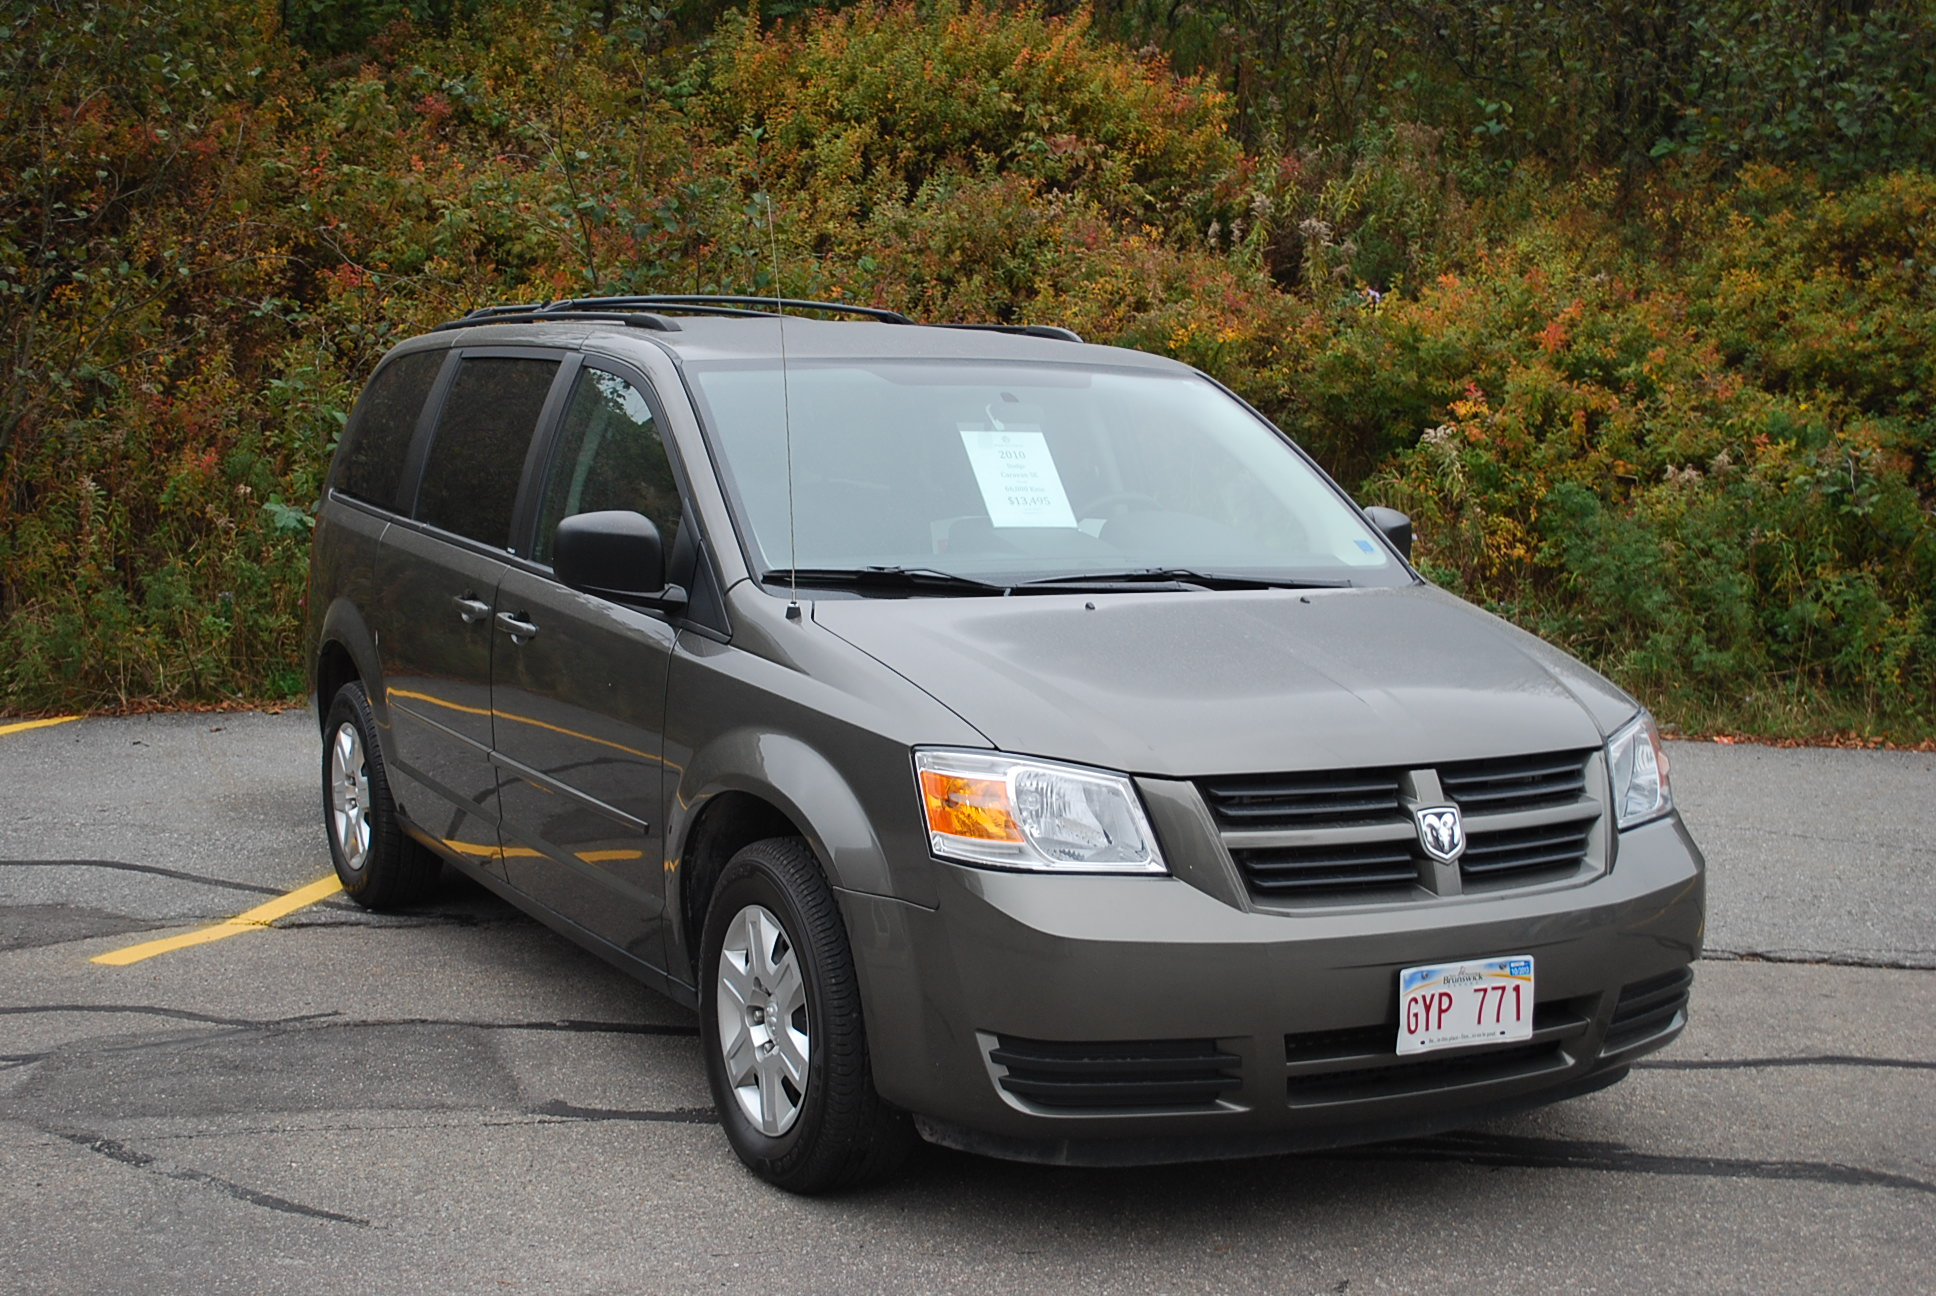 used 2010 dodge grand caravan se for sale in saint john nb. Black Bedroom Furniture Sets. Home Design Ideas